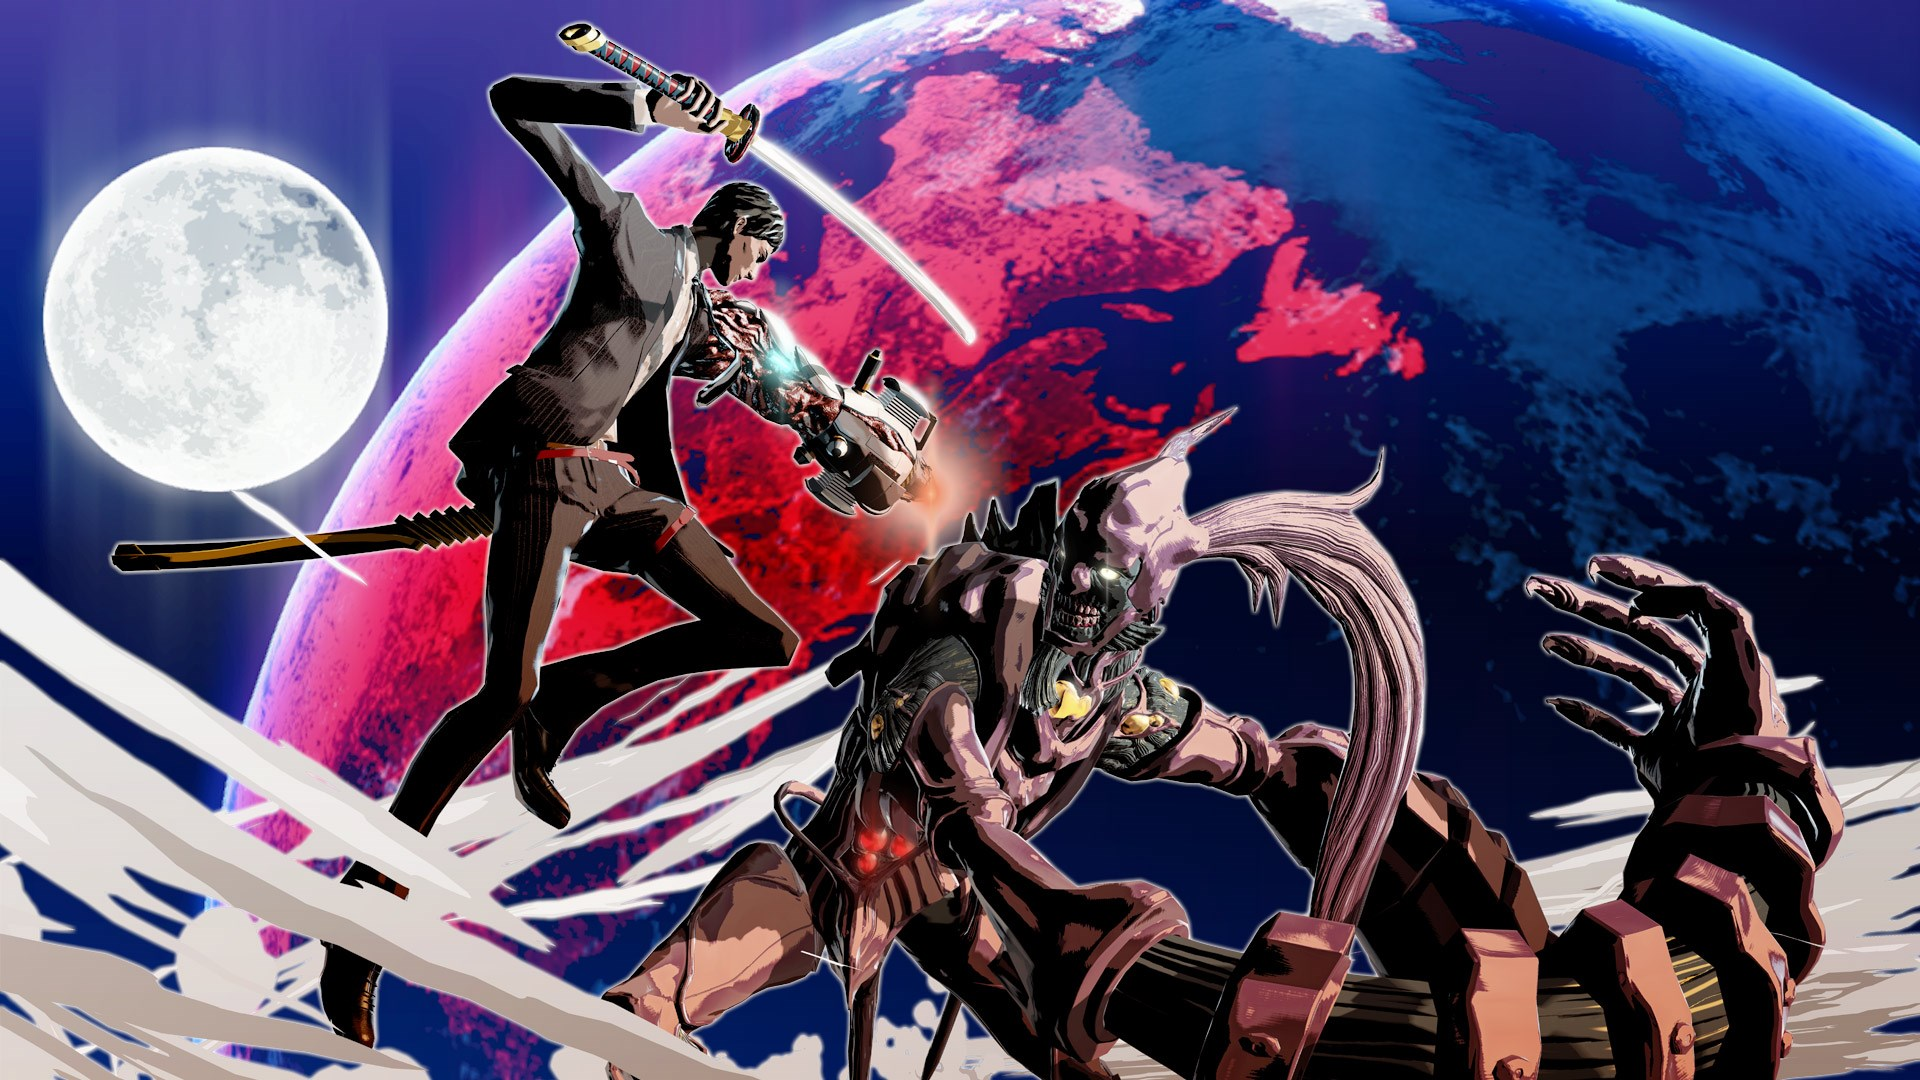 Suda51 wants to see a lot more of his games come to Switch screenshot